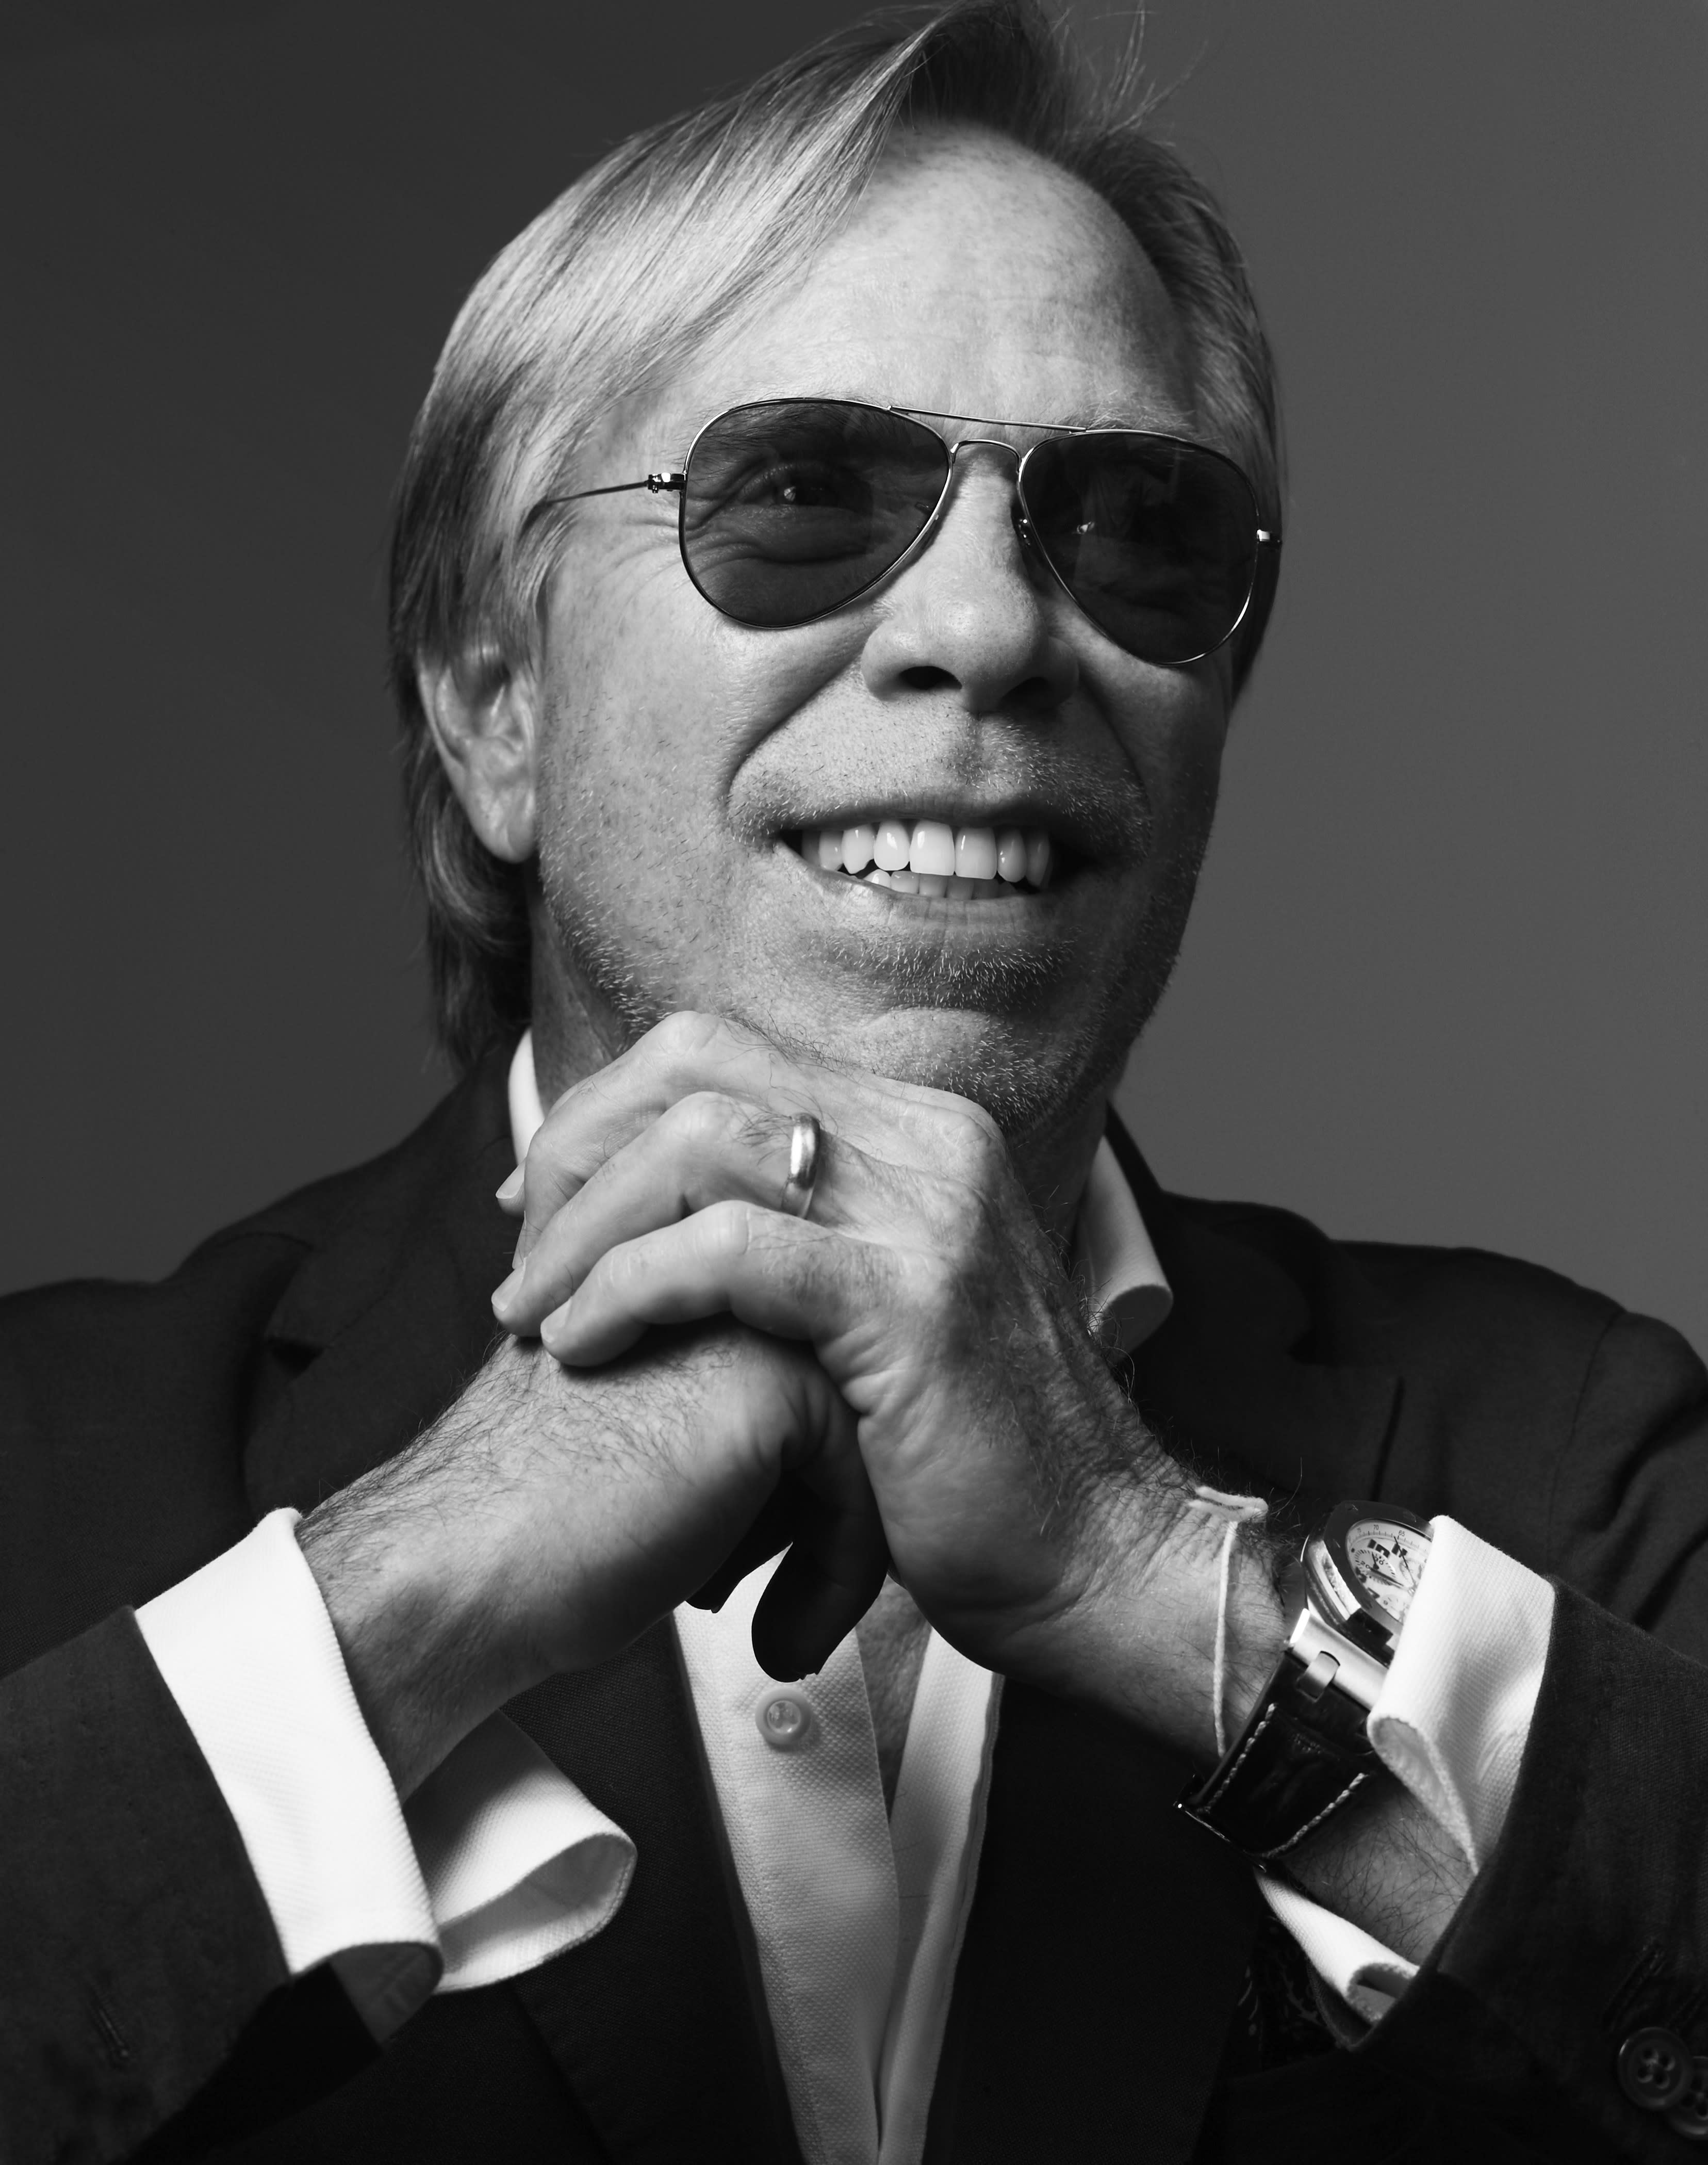 Tommy Hilfiger: 'My favorite style icons include Steve McQueen, Grace Kelly, James Dean'